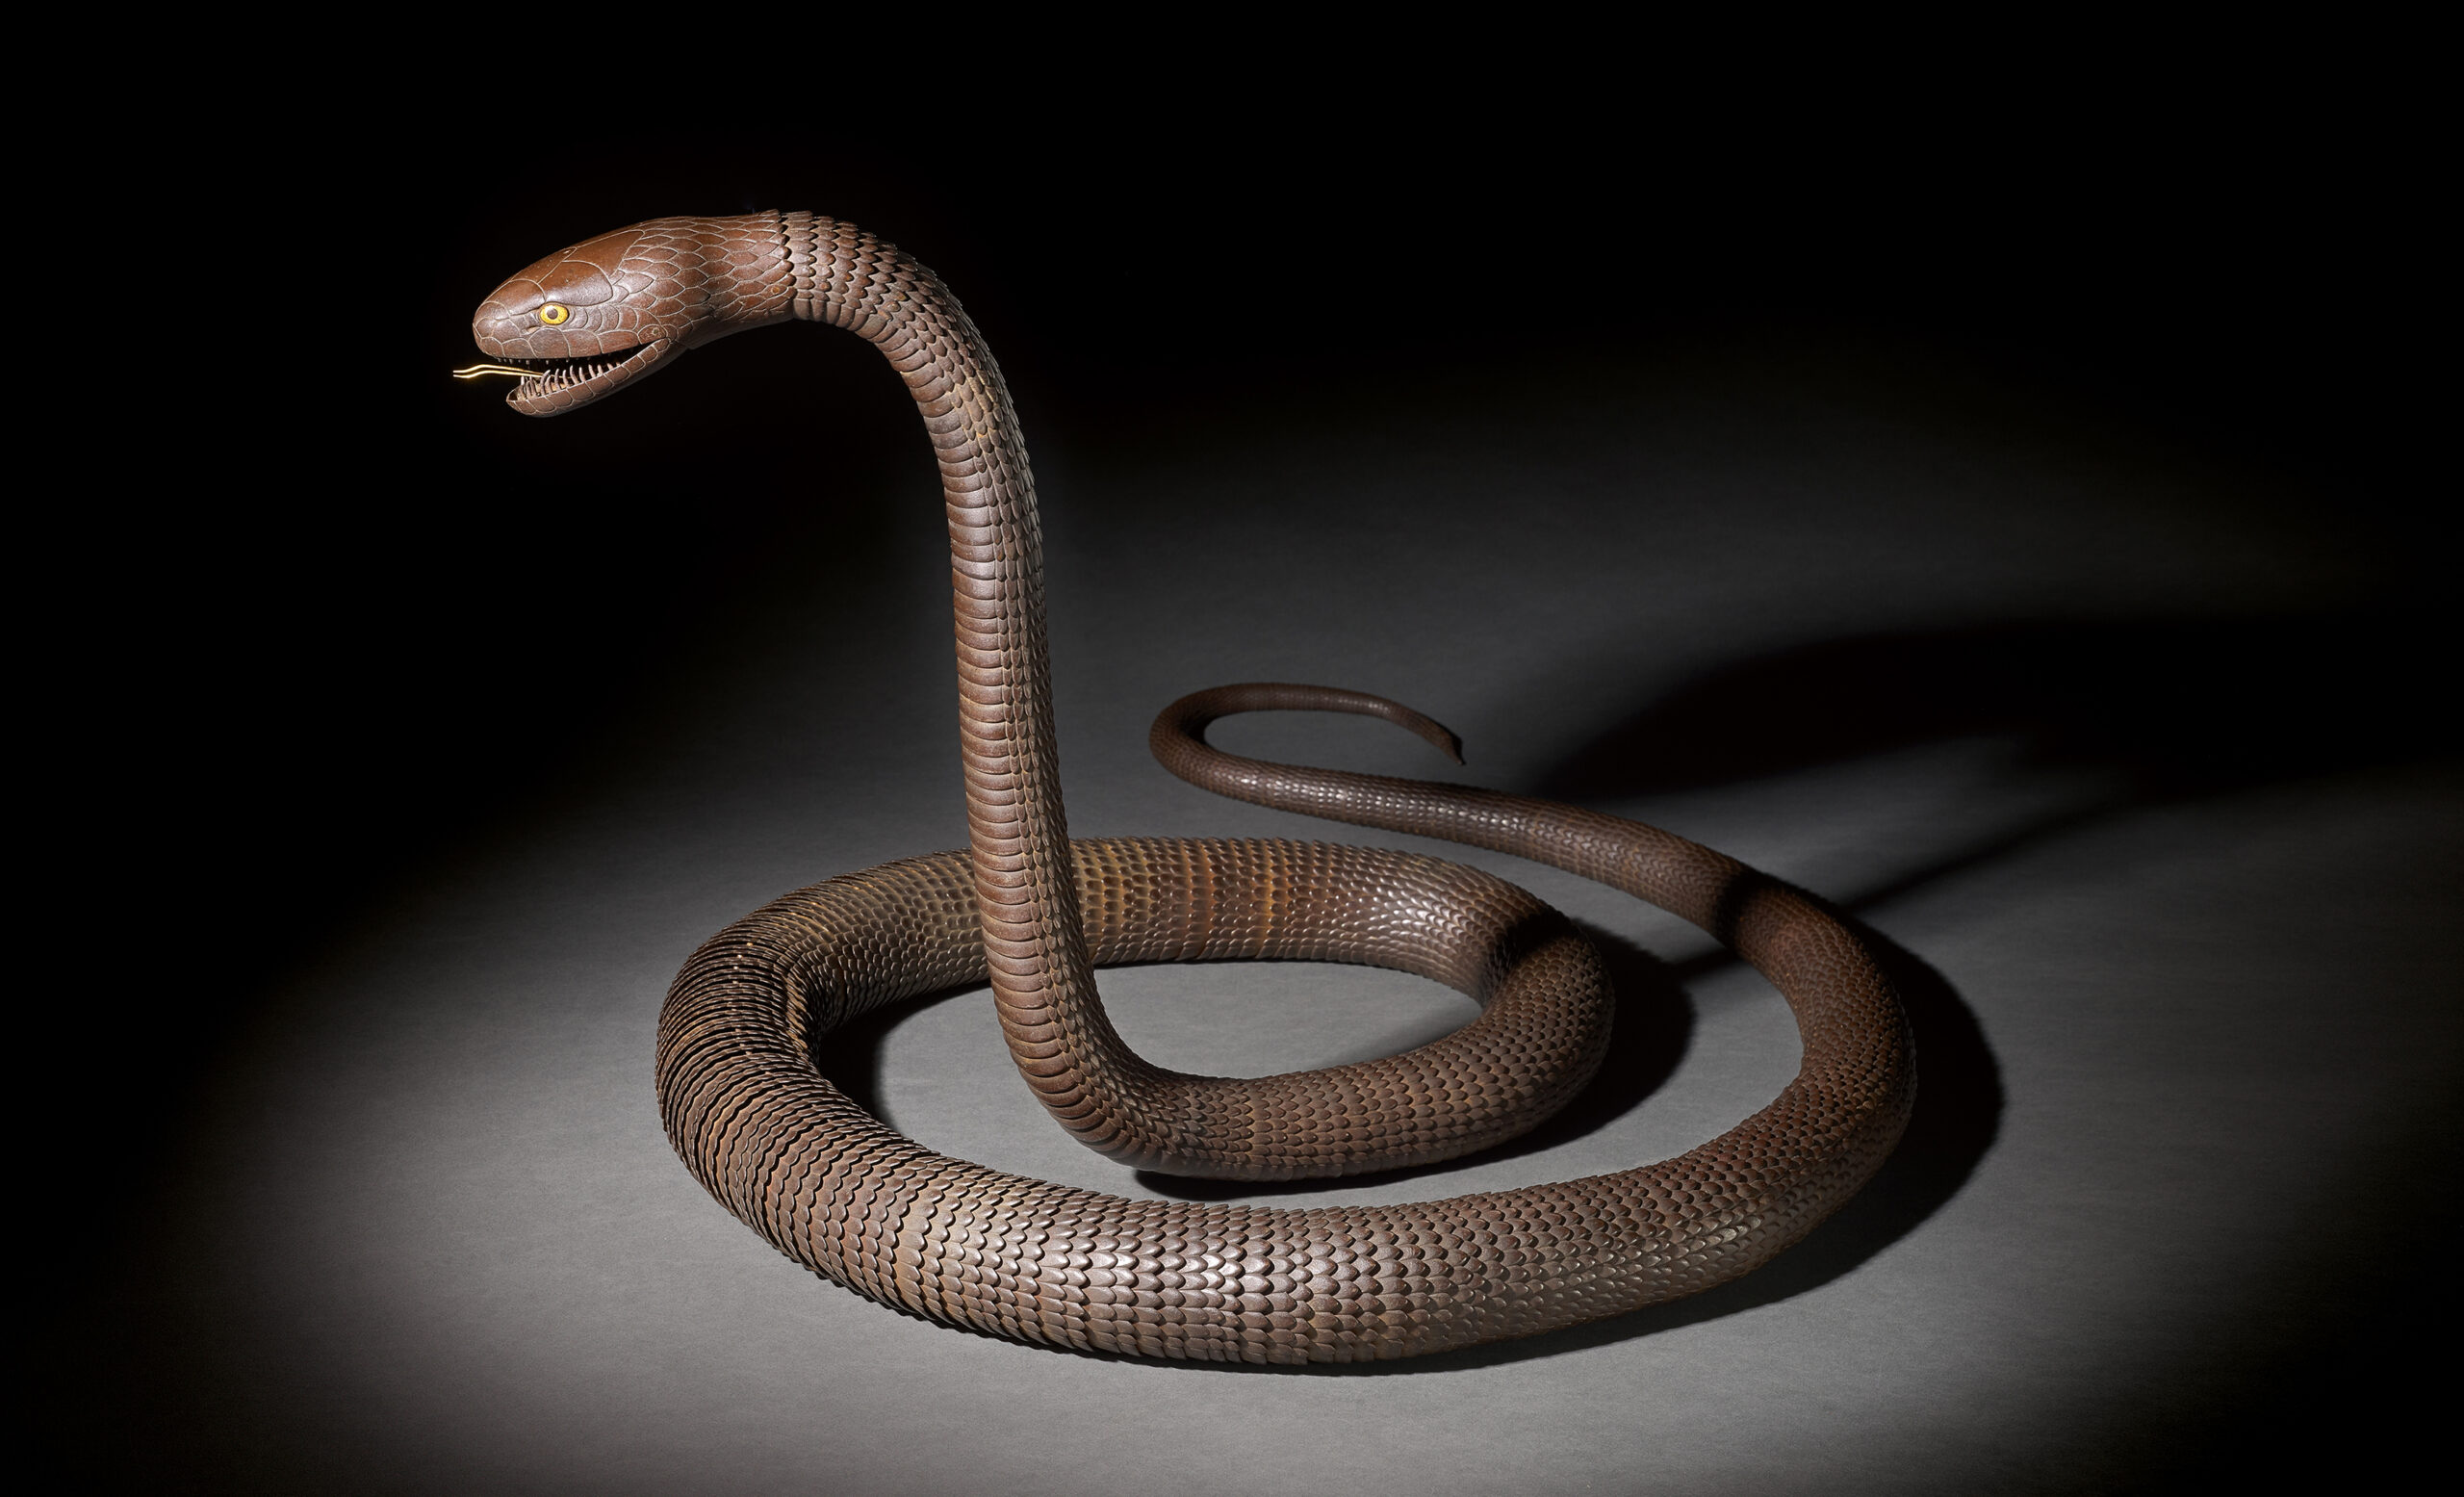 AN IRON ARTICULATED MODEL OF AN EXCEPTIONALLY LONG SNAKE WITH INSCRIPTION TENSHŌ NI-SEINEN MYOCHIN SONSHUN SAKU, EDO PERIOD, 19TH CENTURY, 303 cm., 119 1/2 in. long